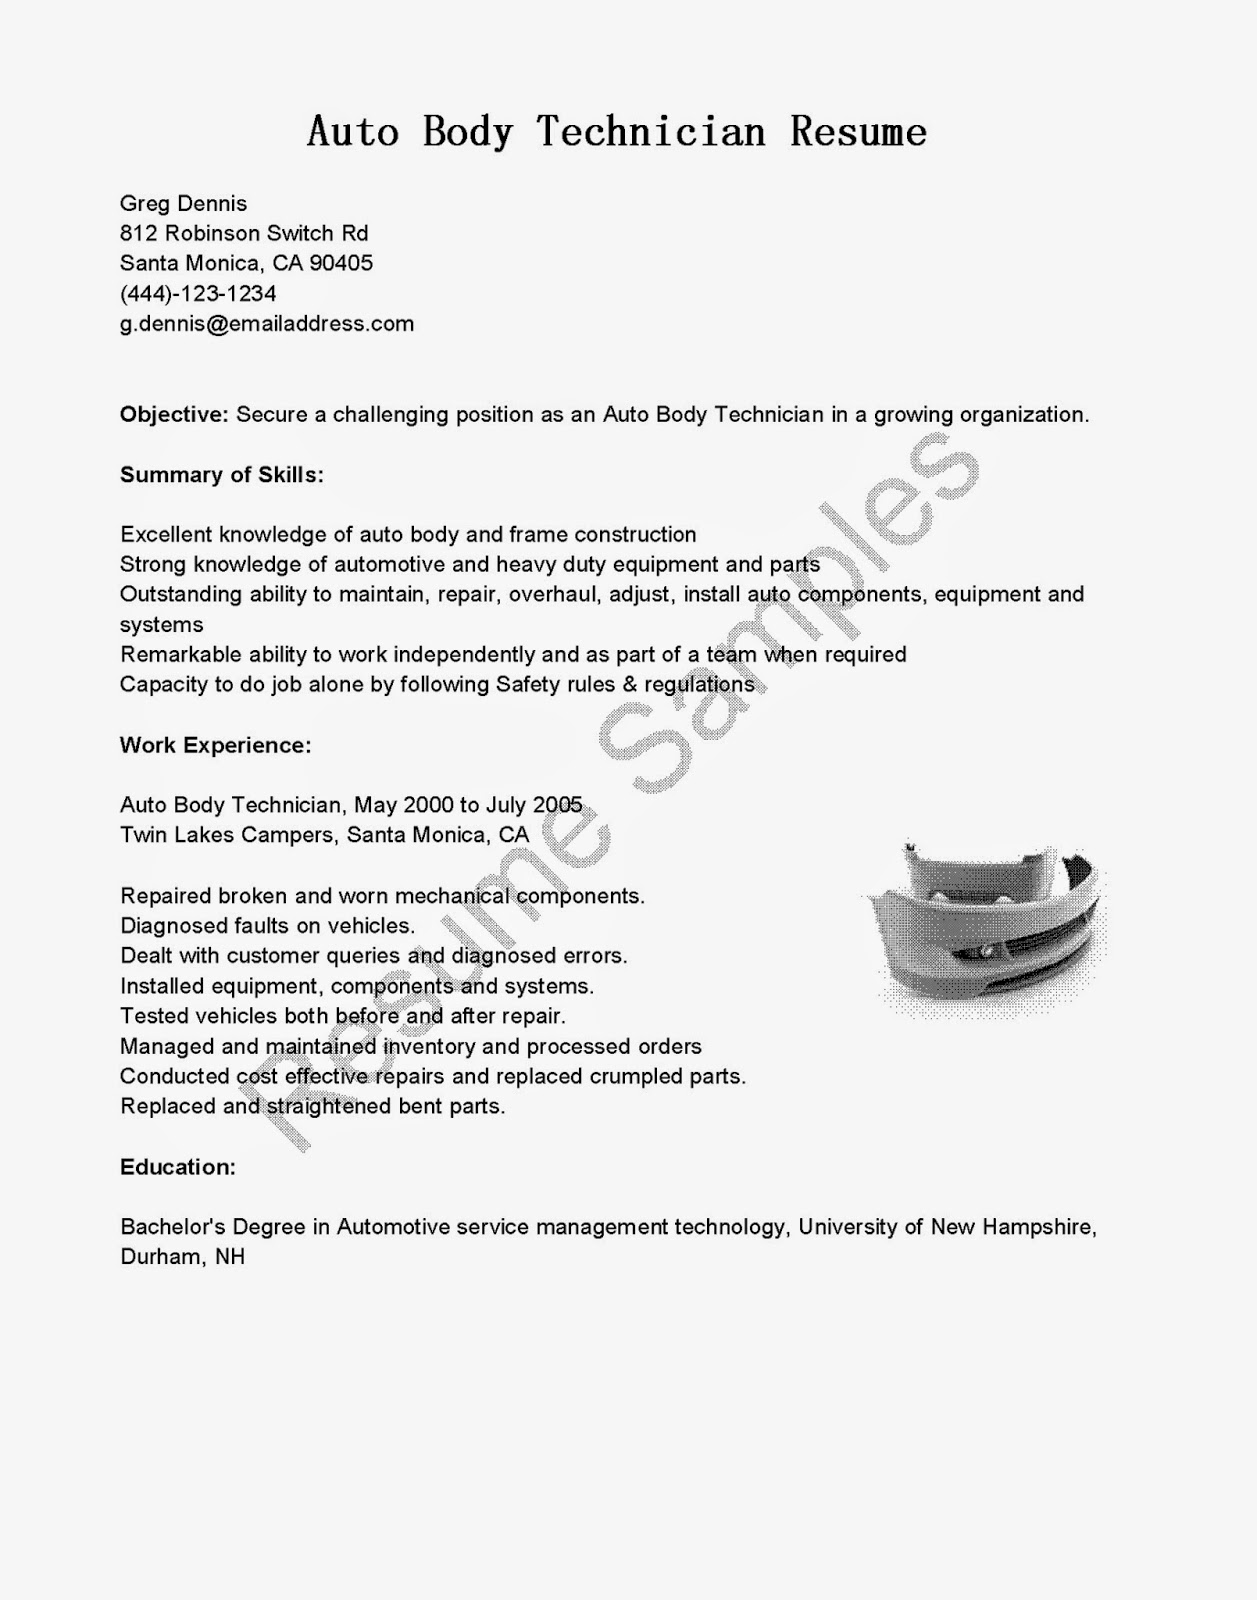 resume samples  auto body technician resume sample